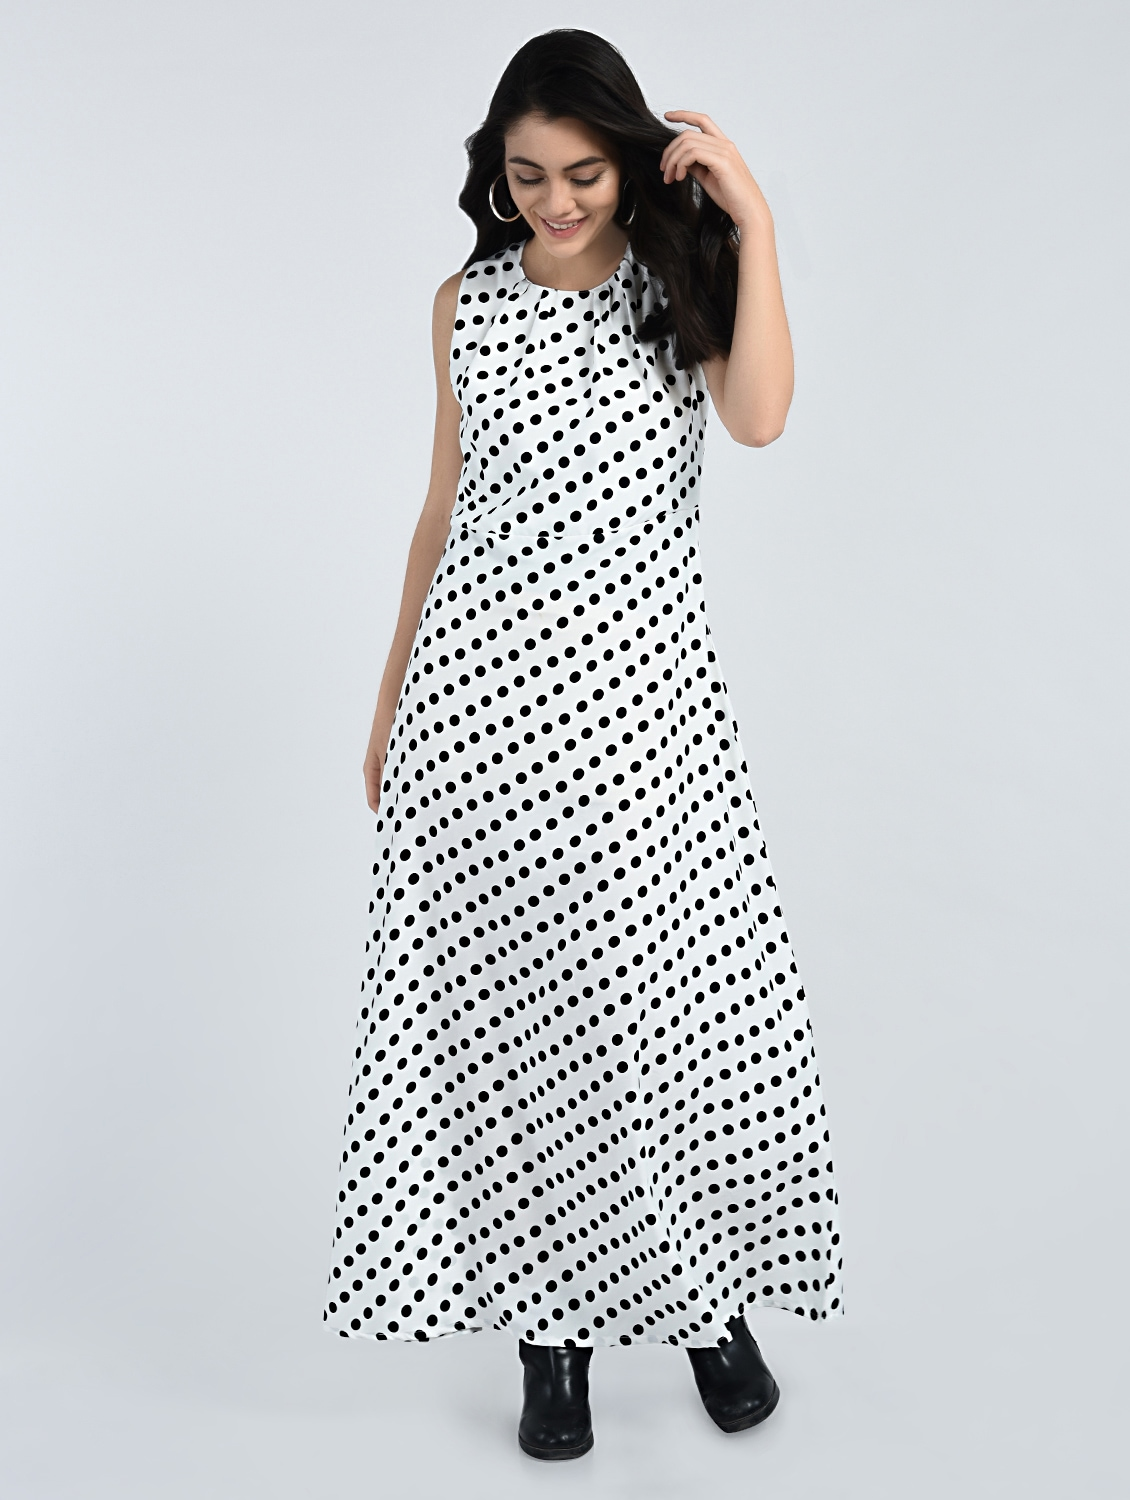 1d7914032a0 Buy Pleated Neck Polka Doted Maxi Dress for Women from A K Fashion for ₹500  at 62% off